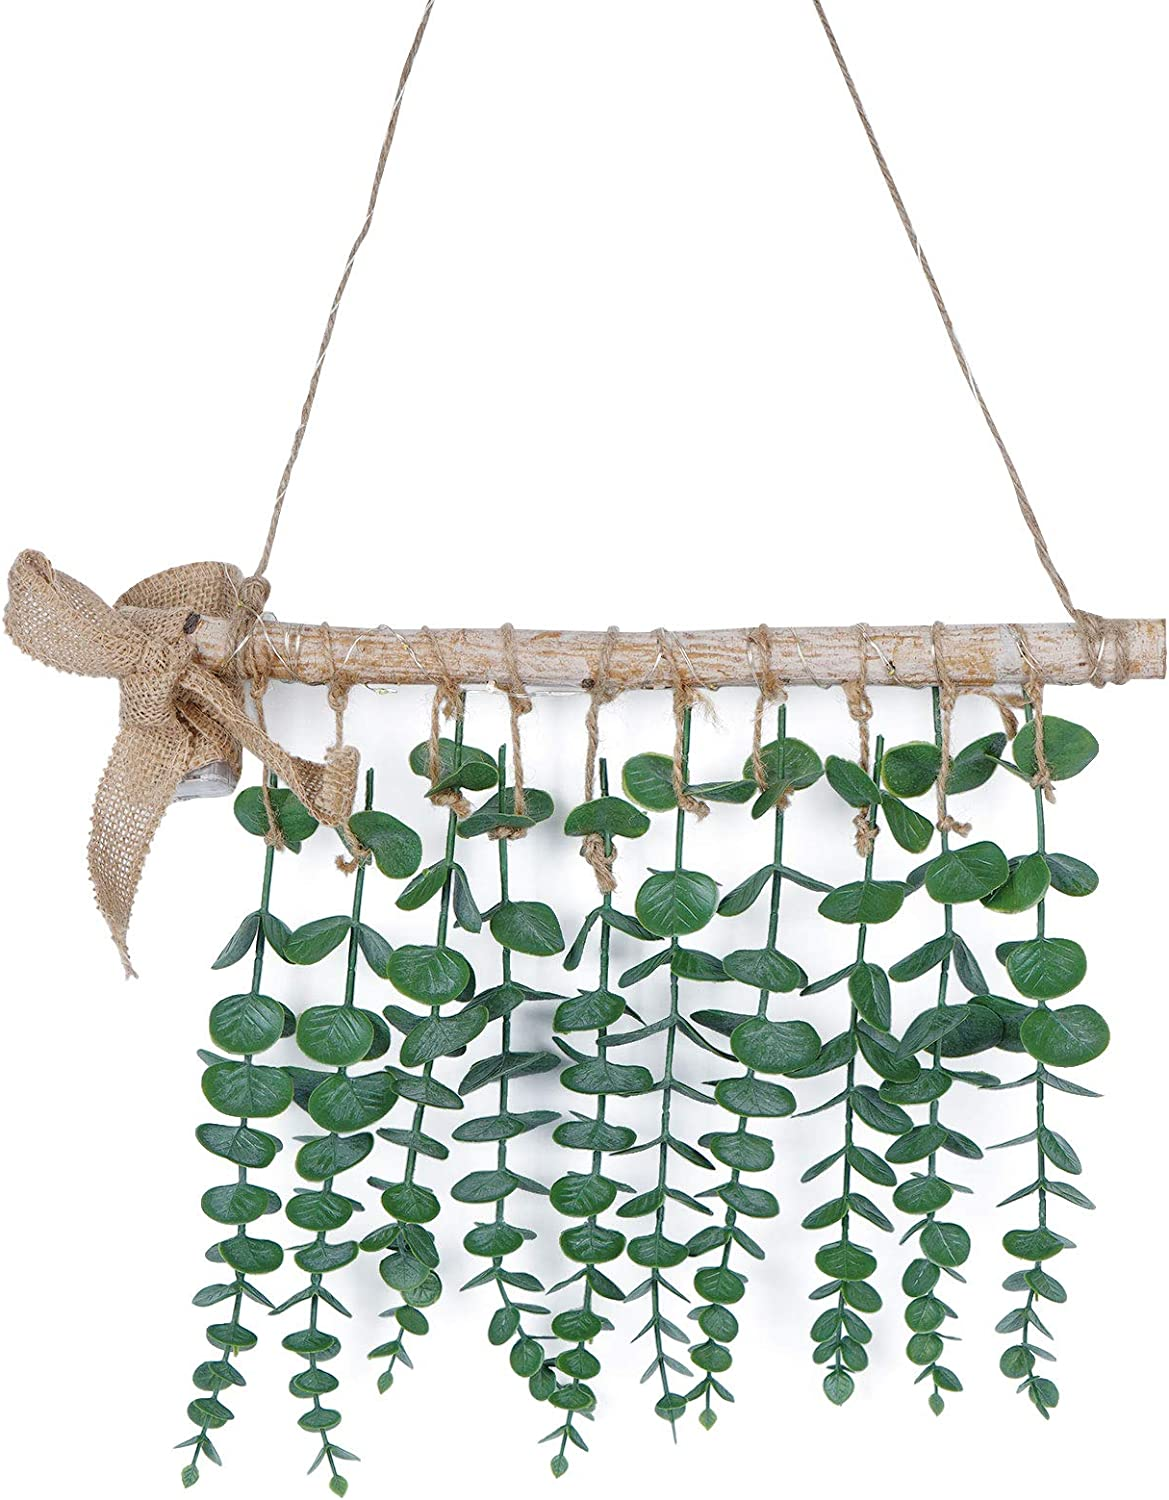 Shiny Flower Eucalyptus Hanging Wall Decor, Artificial Eucalyptus Vines and Greenery Wall Hanging Plants Farmhouse Boho Wall Decor for Bedroom, Kitchen, Office and Bathroom